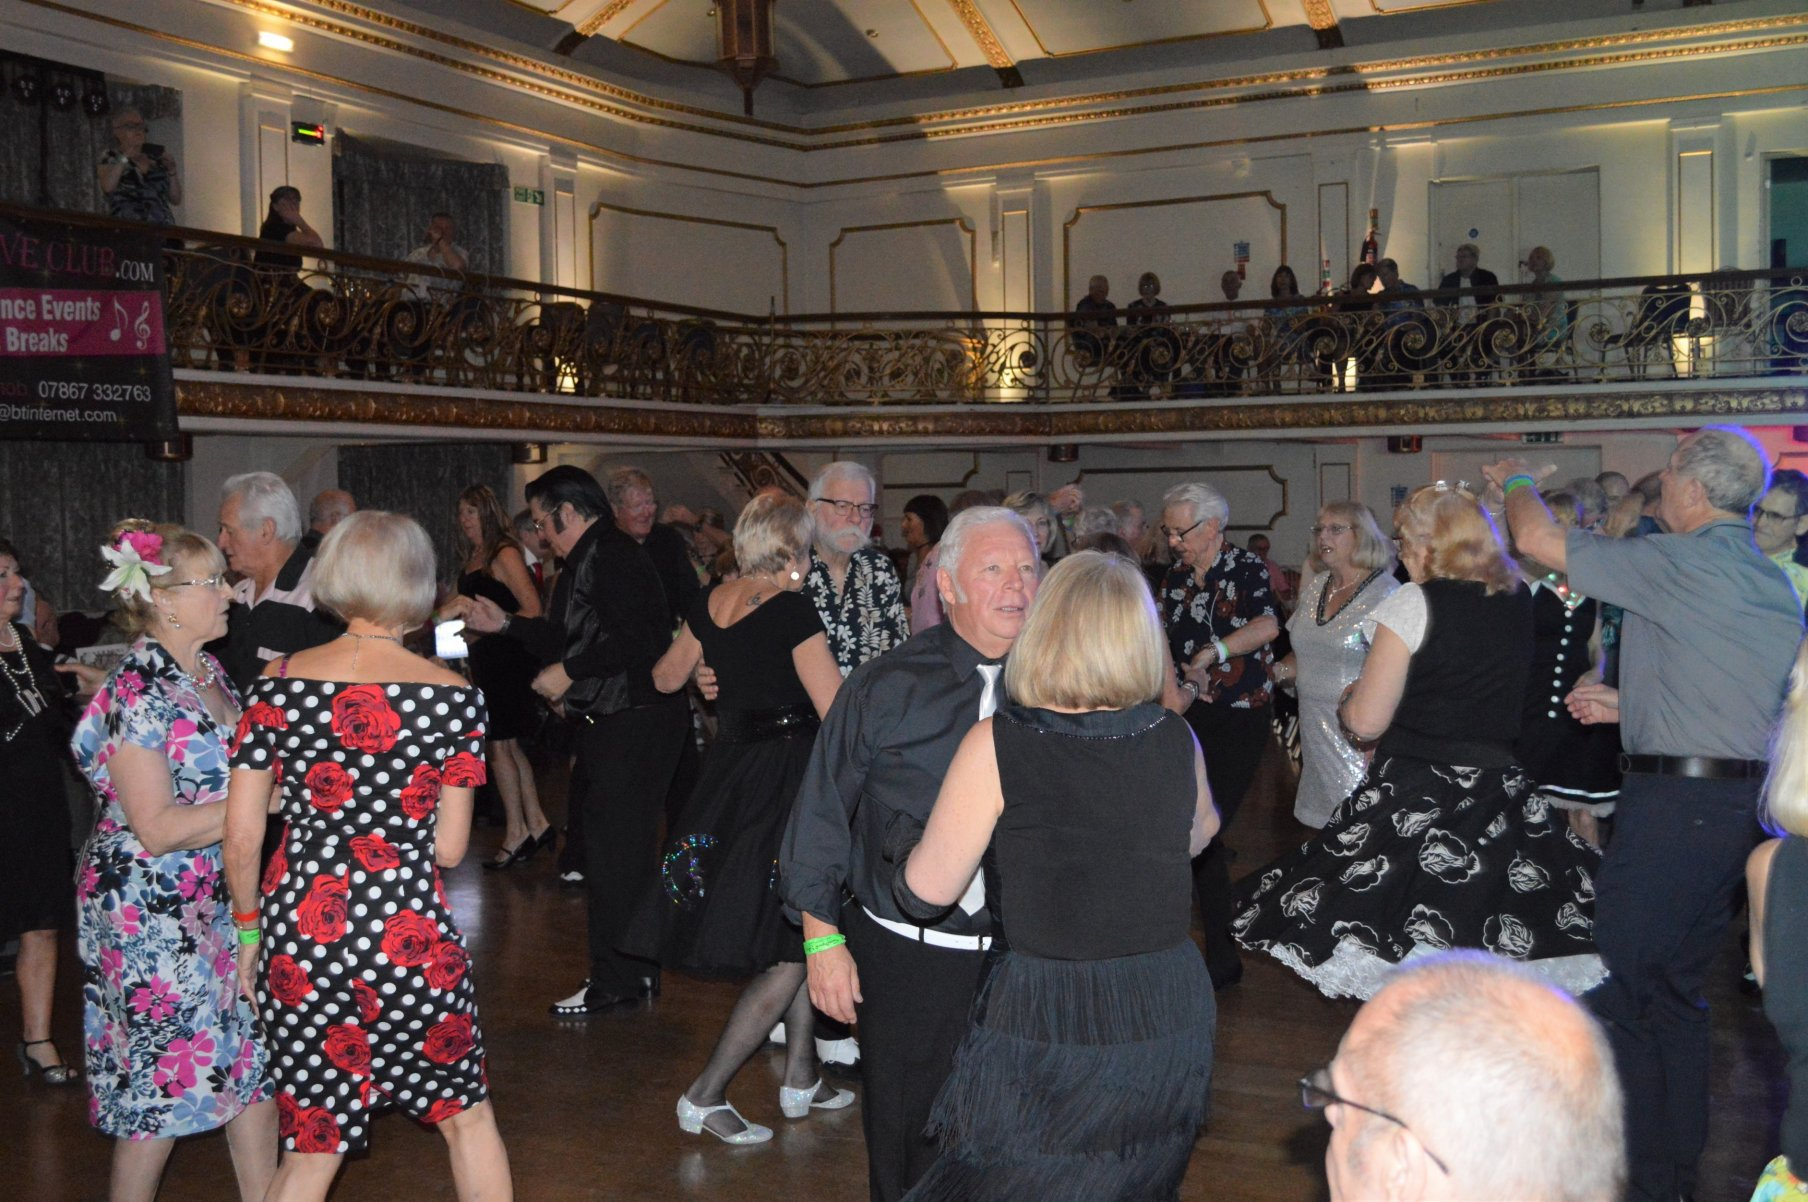 Link to Southport Jive Photos